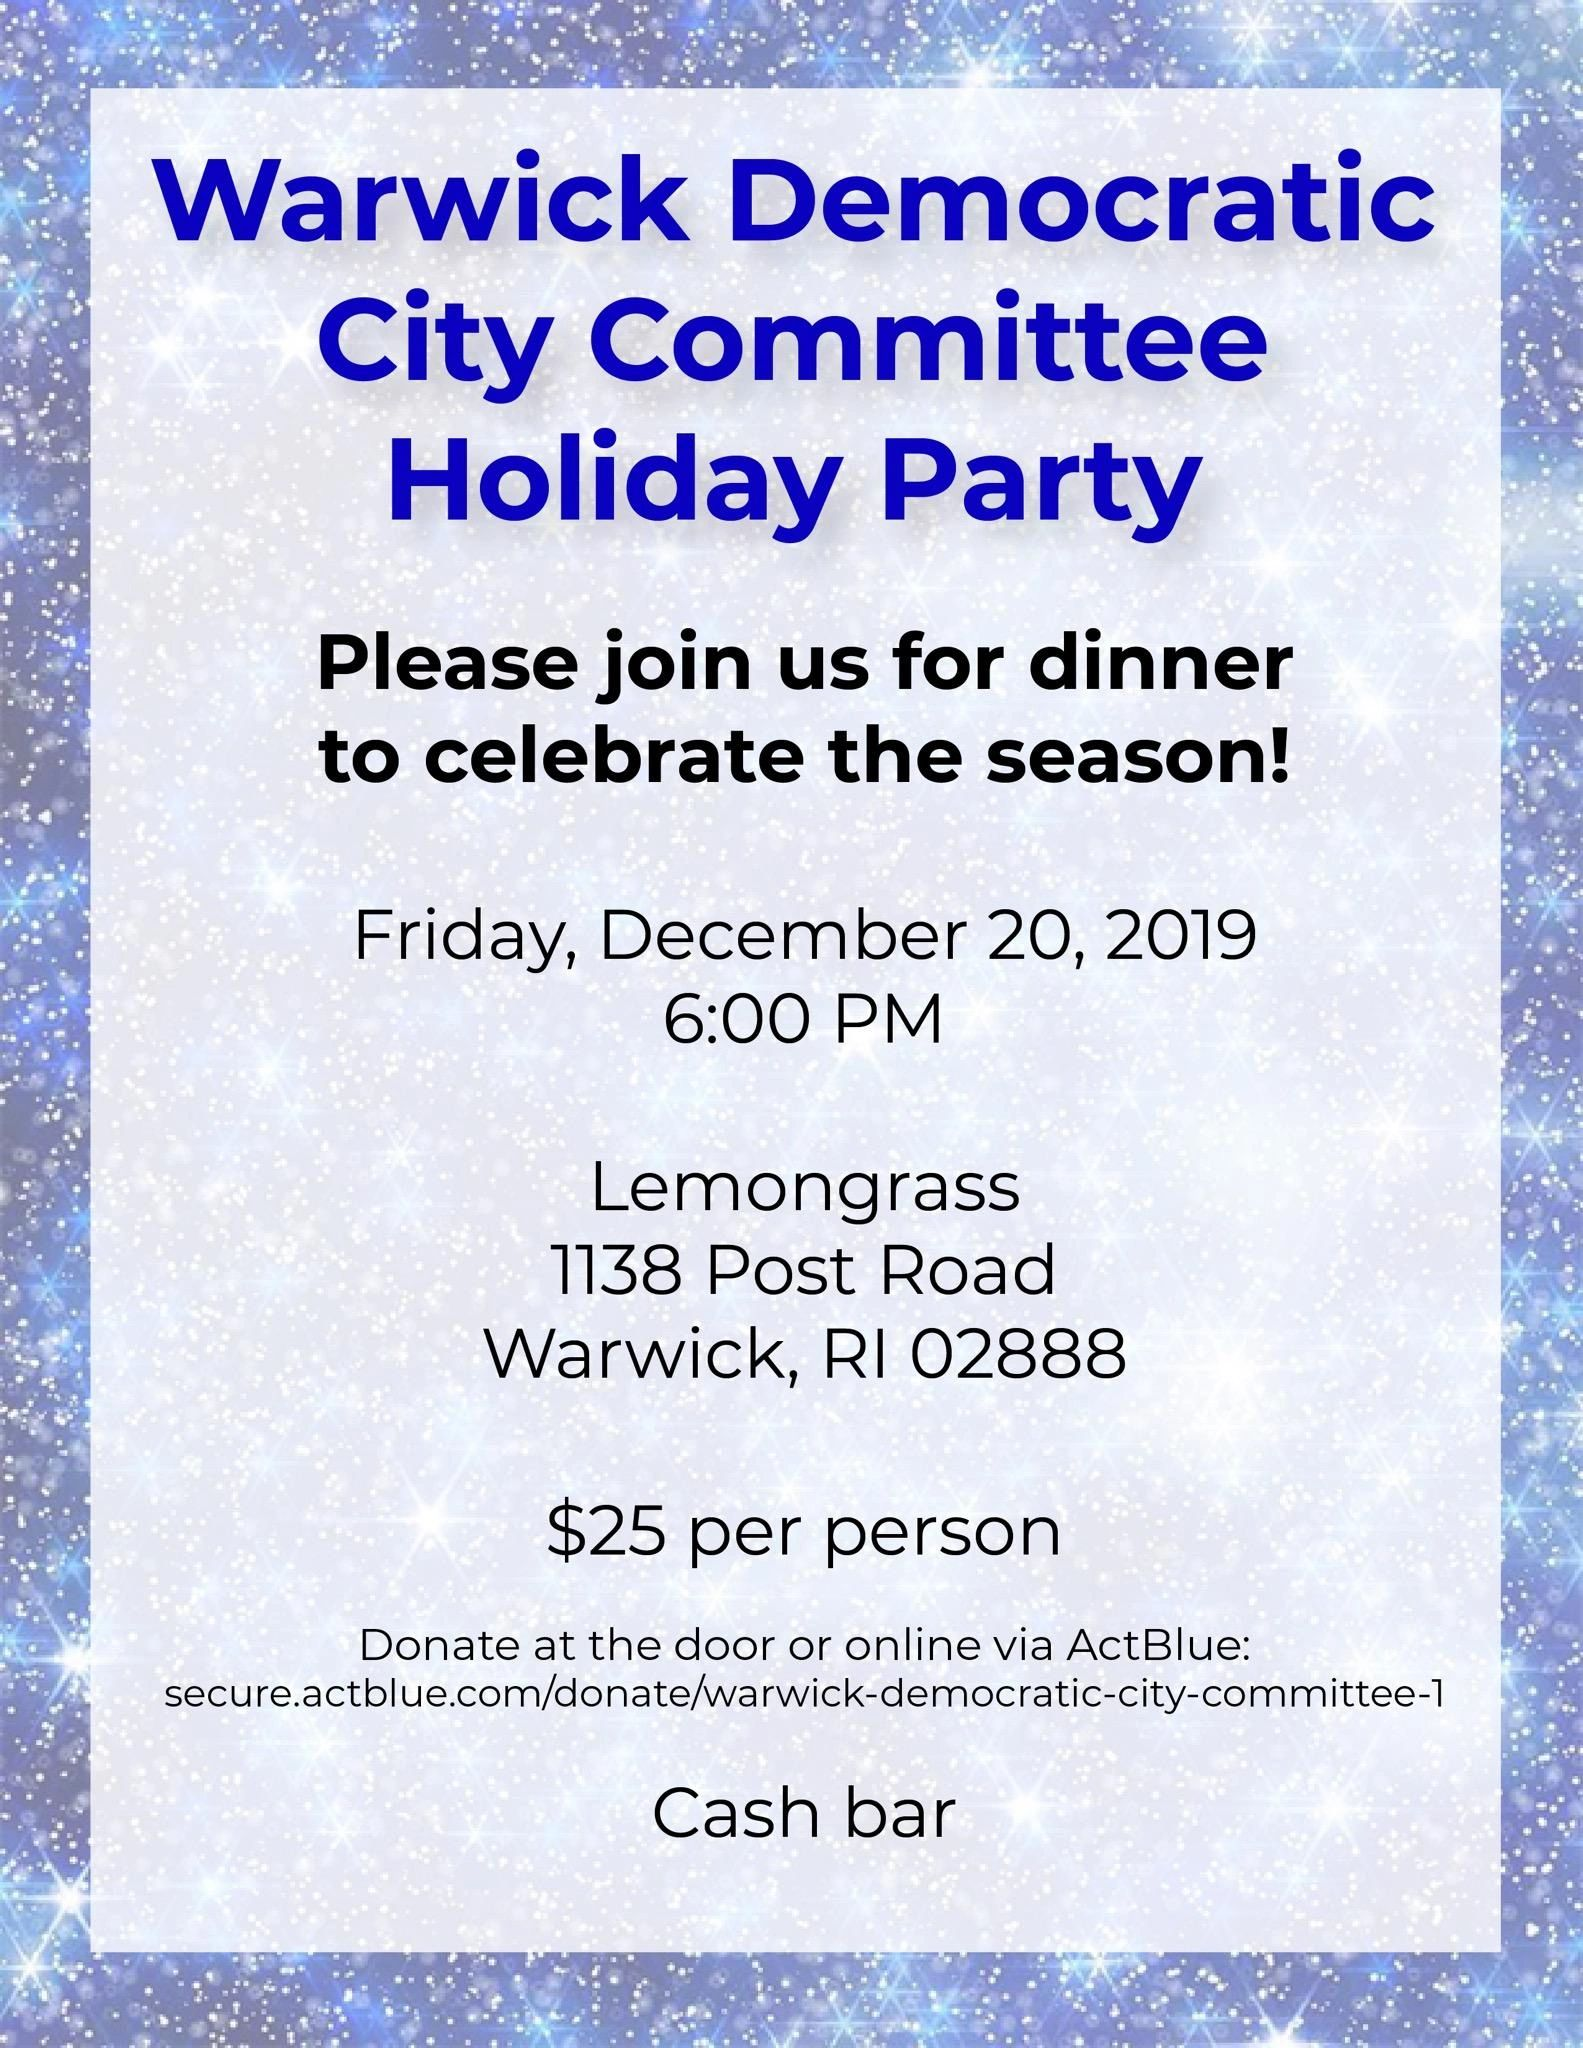 "{""blocks"":[{""key"":""e8ifa"",""text"":""Please join us for dinner to celebrate the season! Warwick Democratic City Committee members and family are cordially invited! "",""type"":""unstyled"",""depth"":0,""inlineStyleRanges"":[],""entityRanges"":[],""data"":{}}],""entityMap"":{}}"